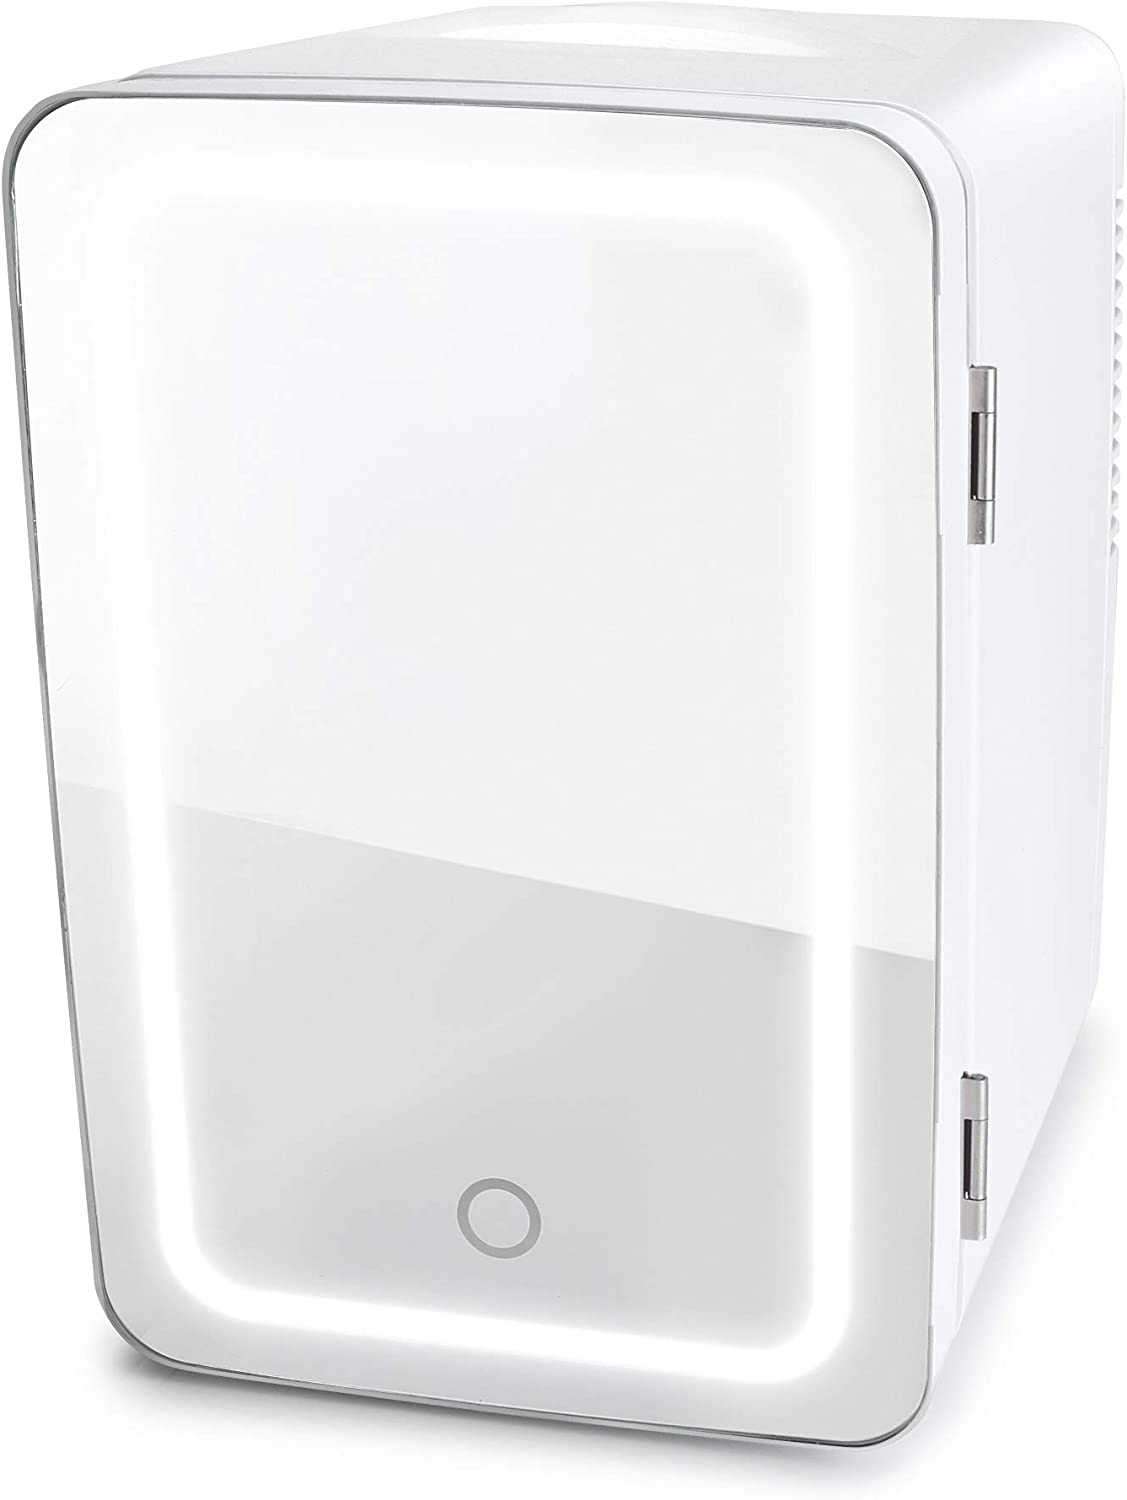 Personal Chiller LED Lighted Mini Fridge with Mirror Door, White